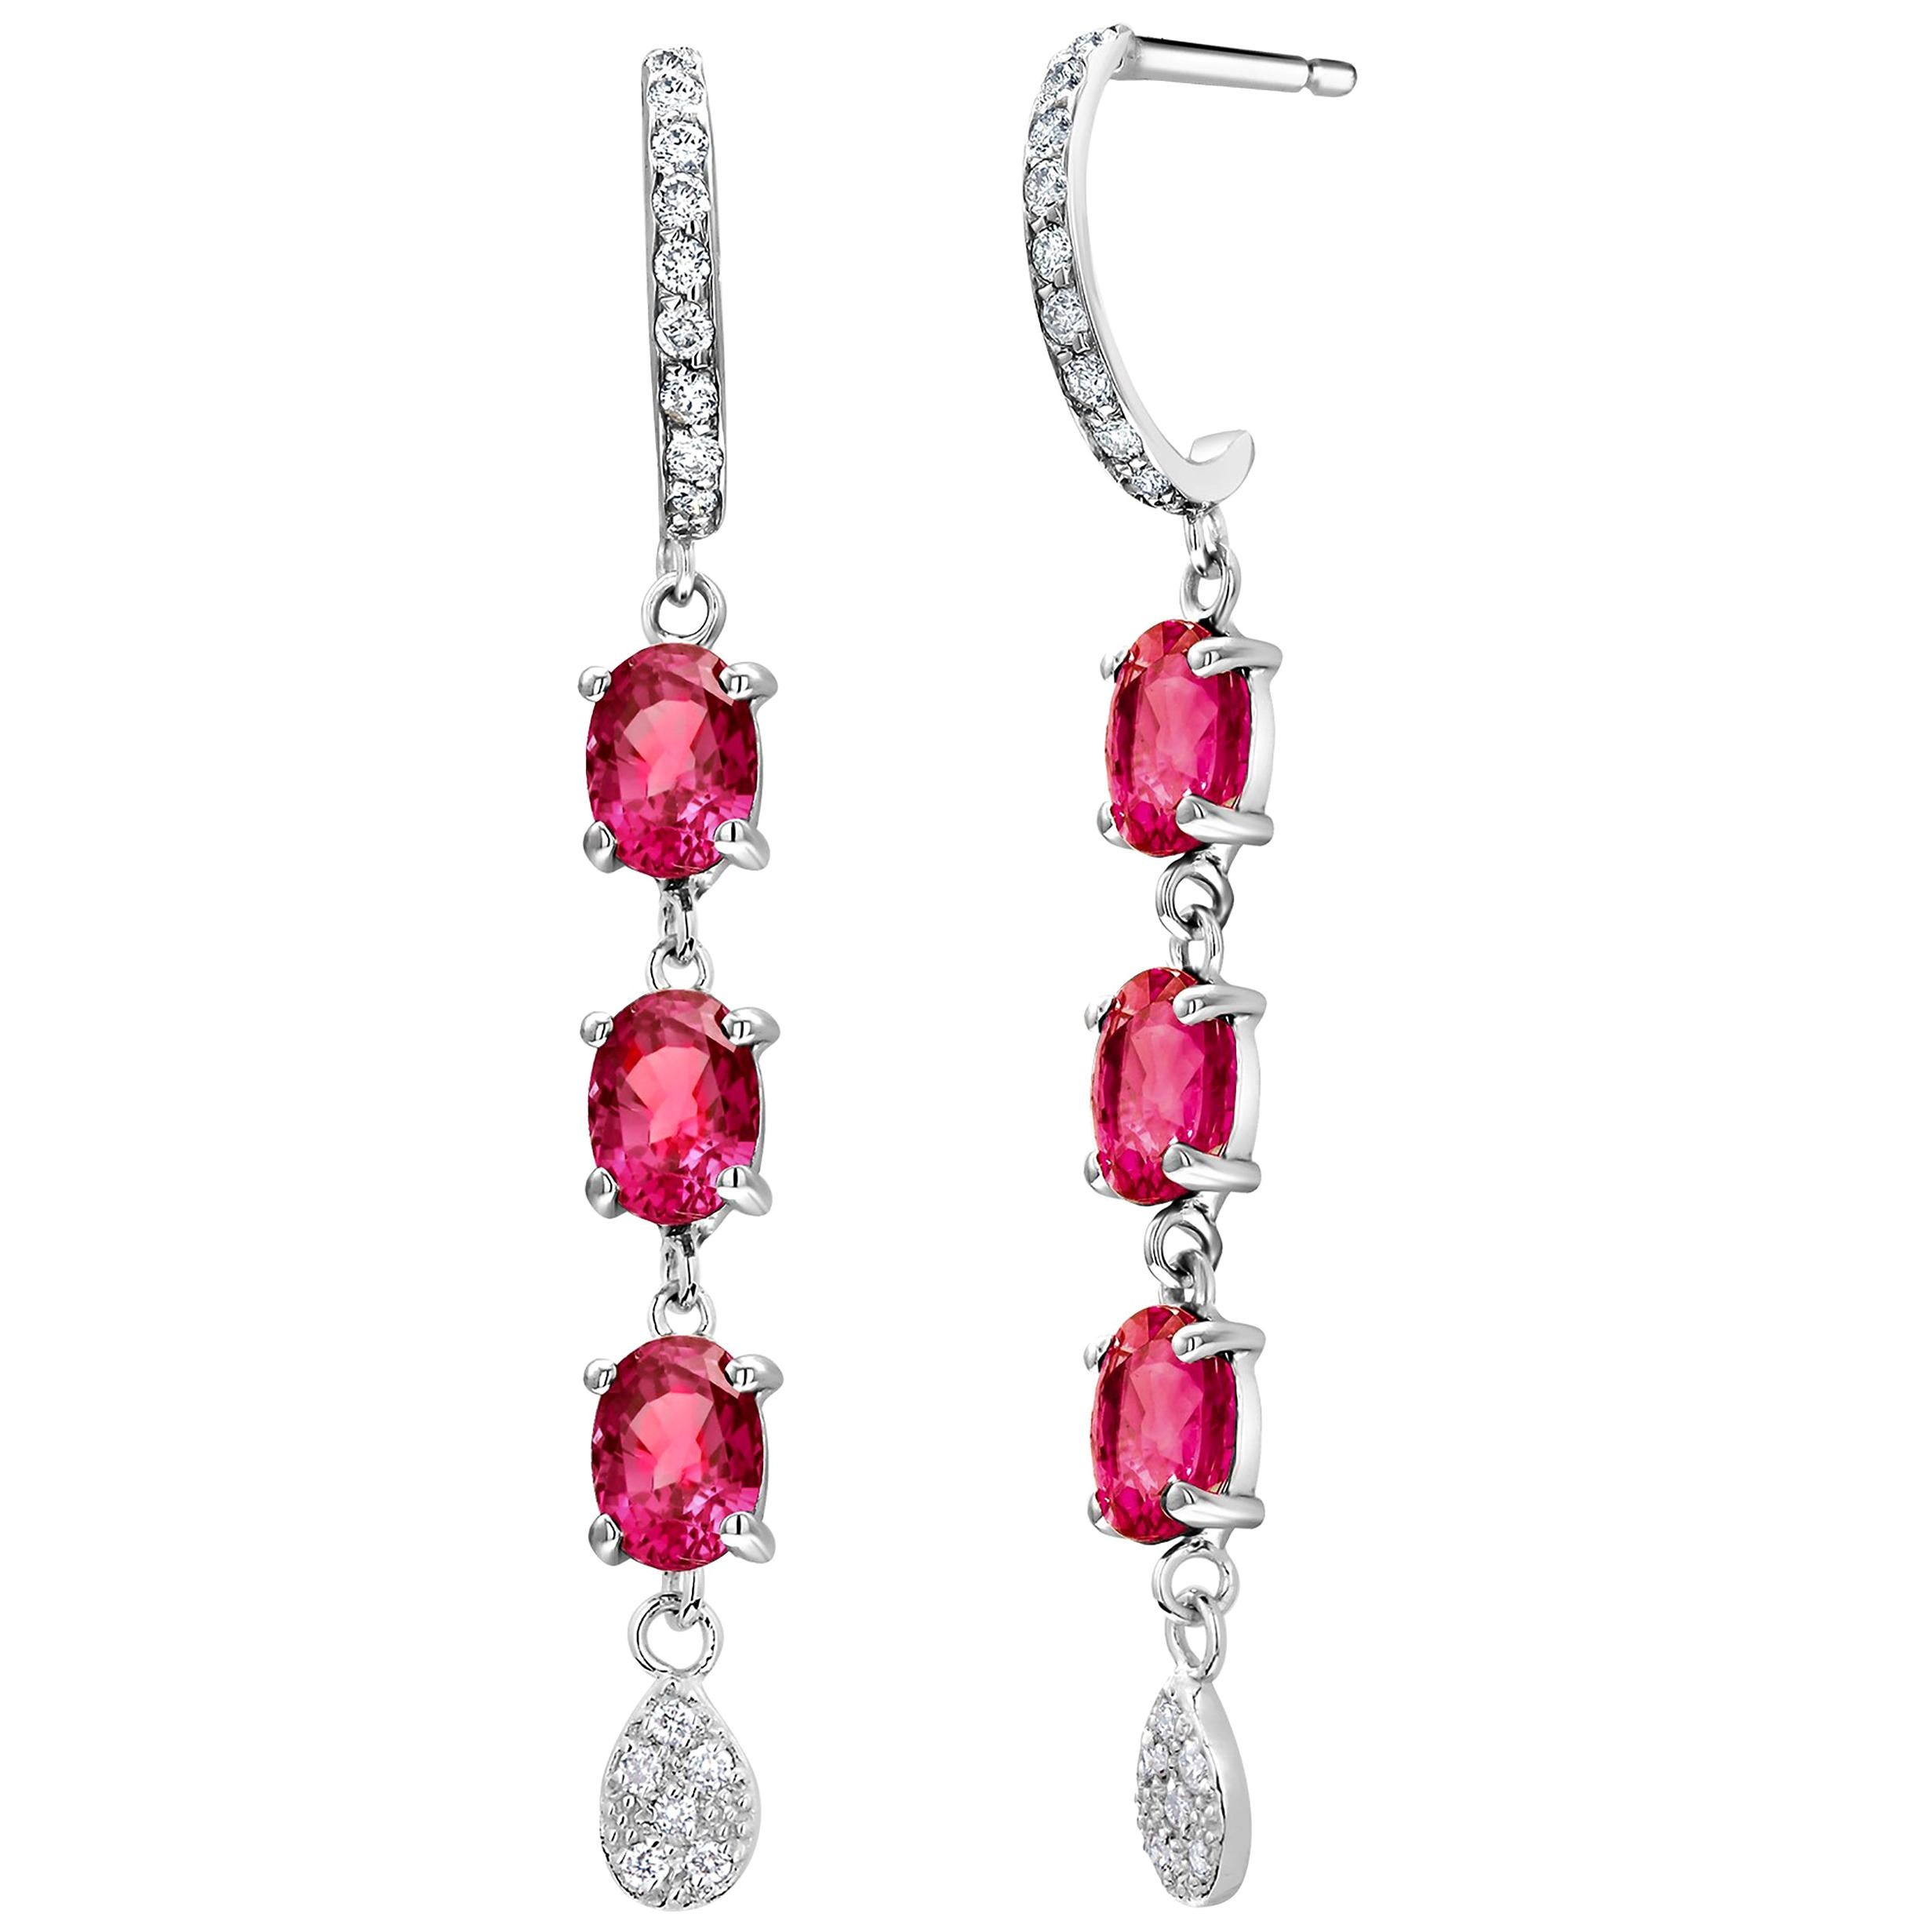 Diamond Gold Hoop Earrings with Six Burma Ruby Weighing 4.50 Carats